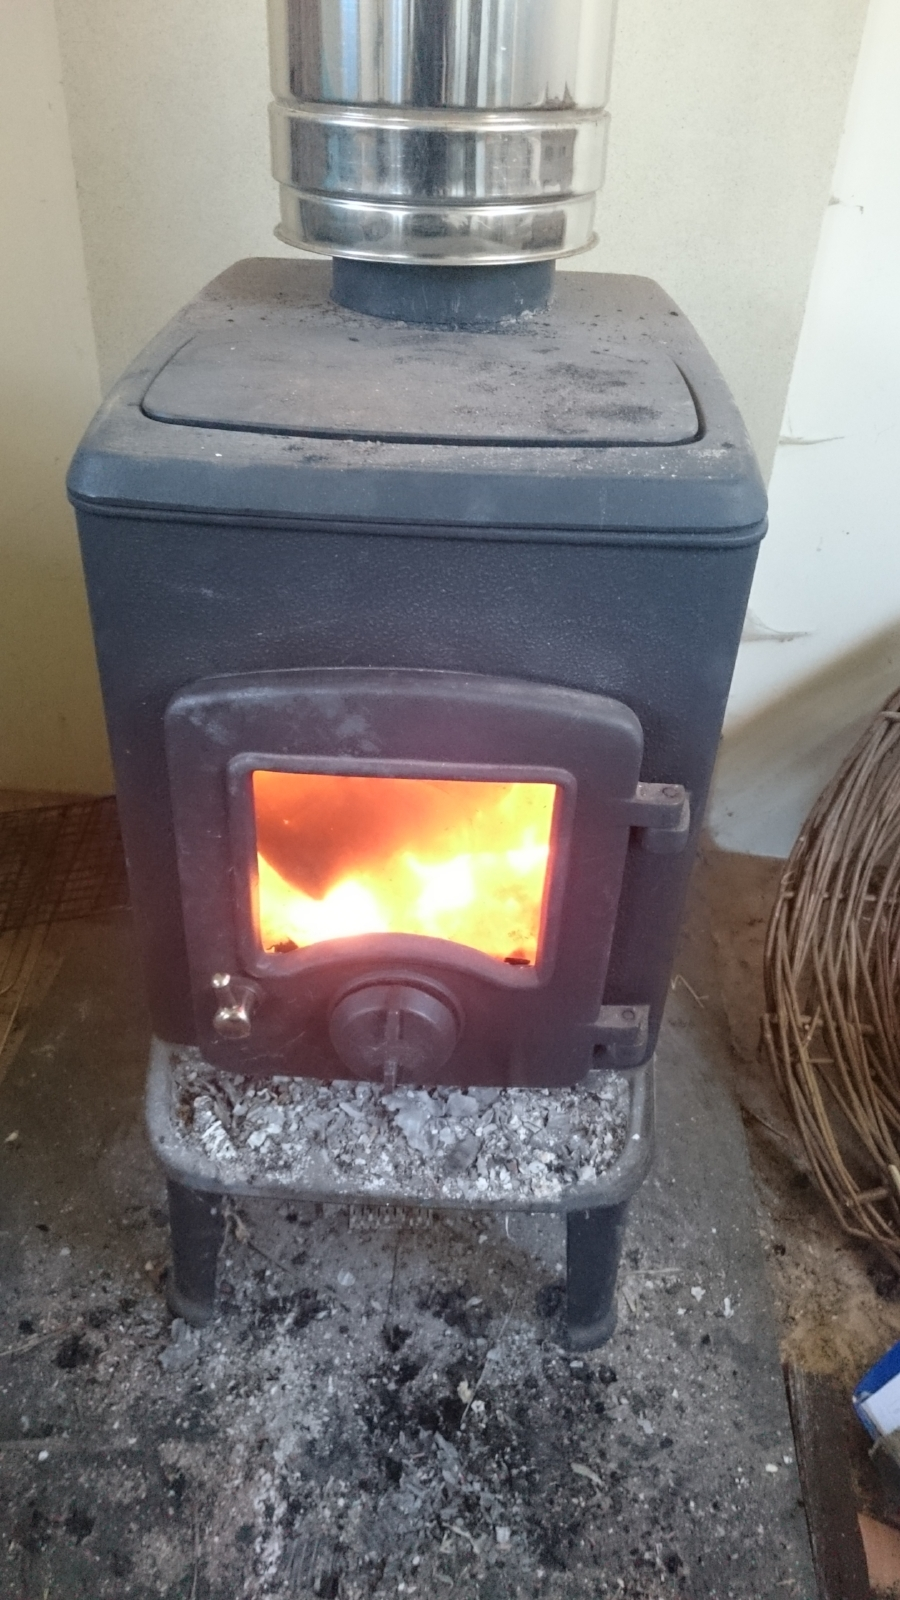 The welcome warmth of the woodburner